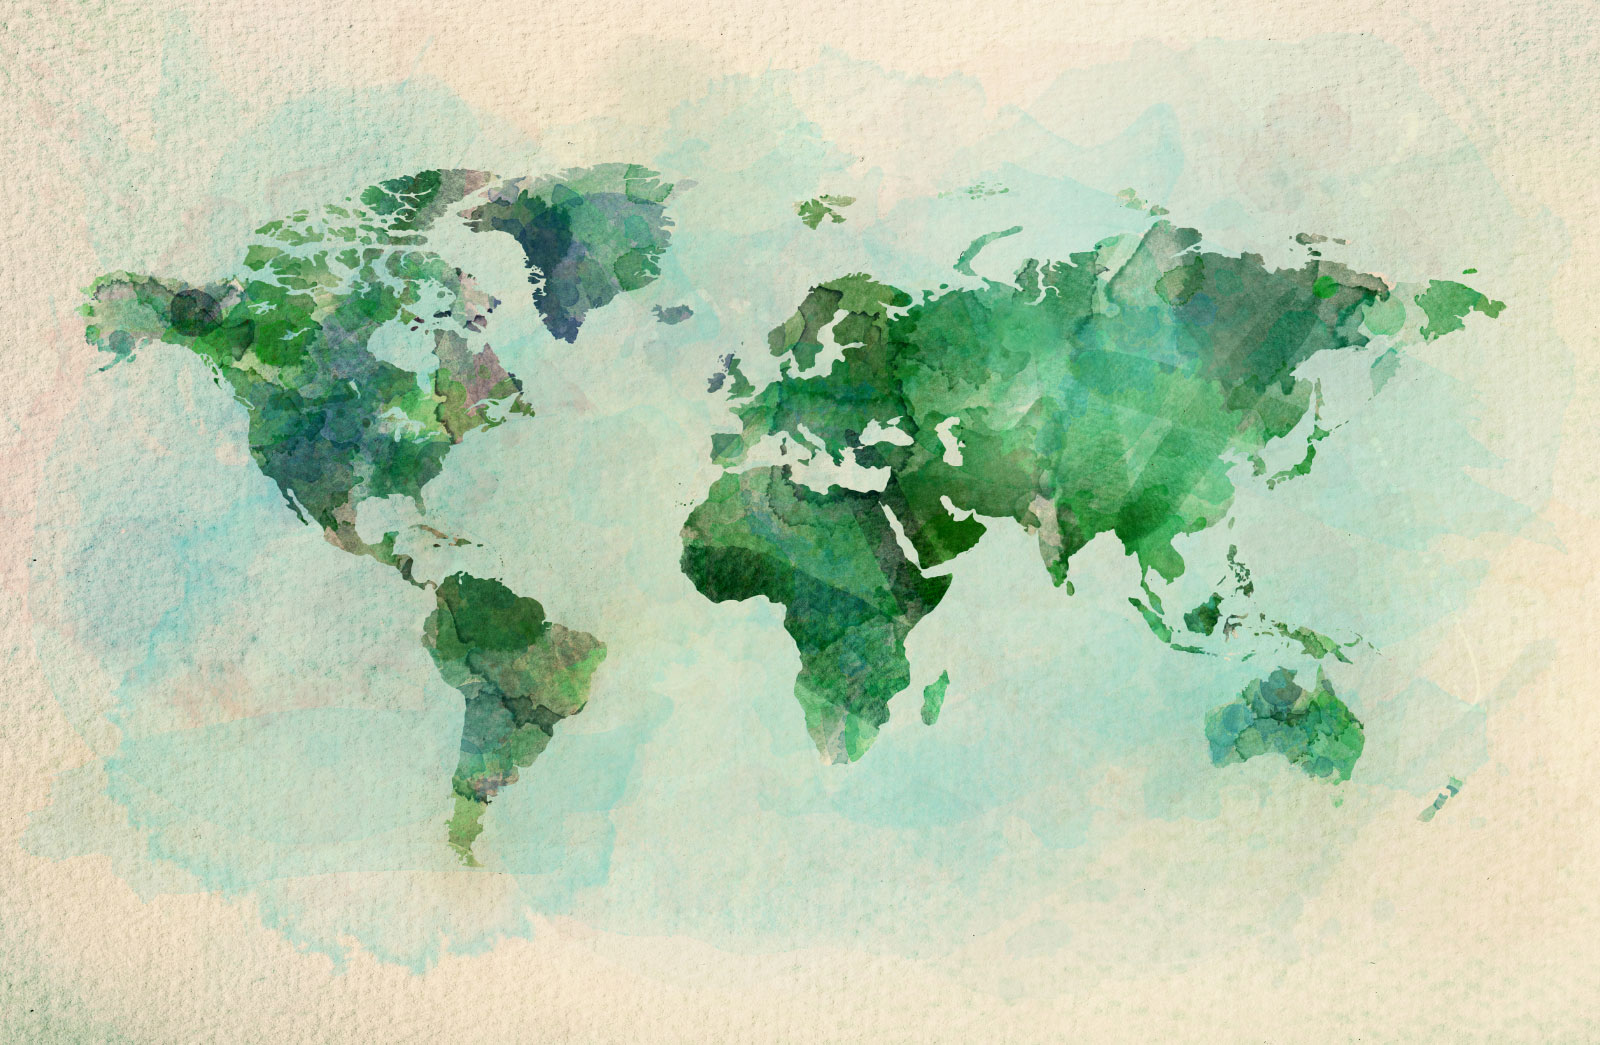 World Map in Emerald Colors